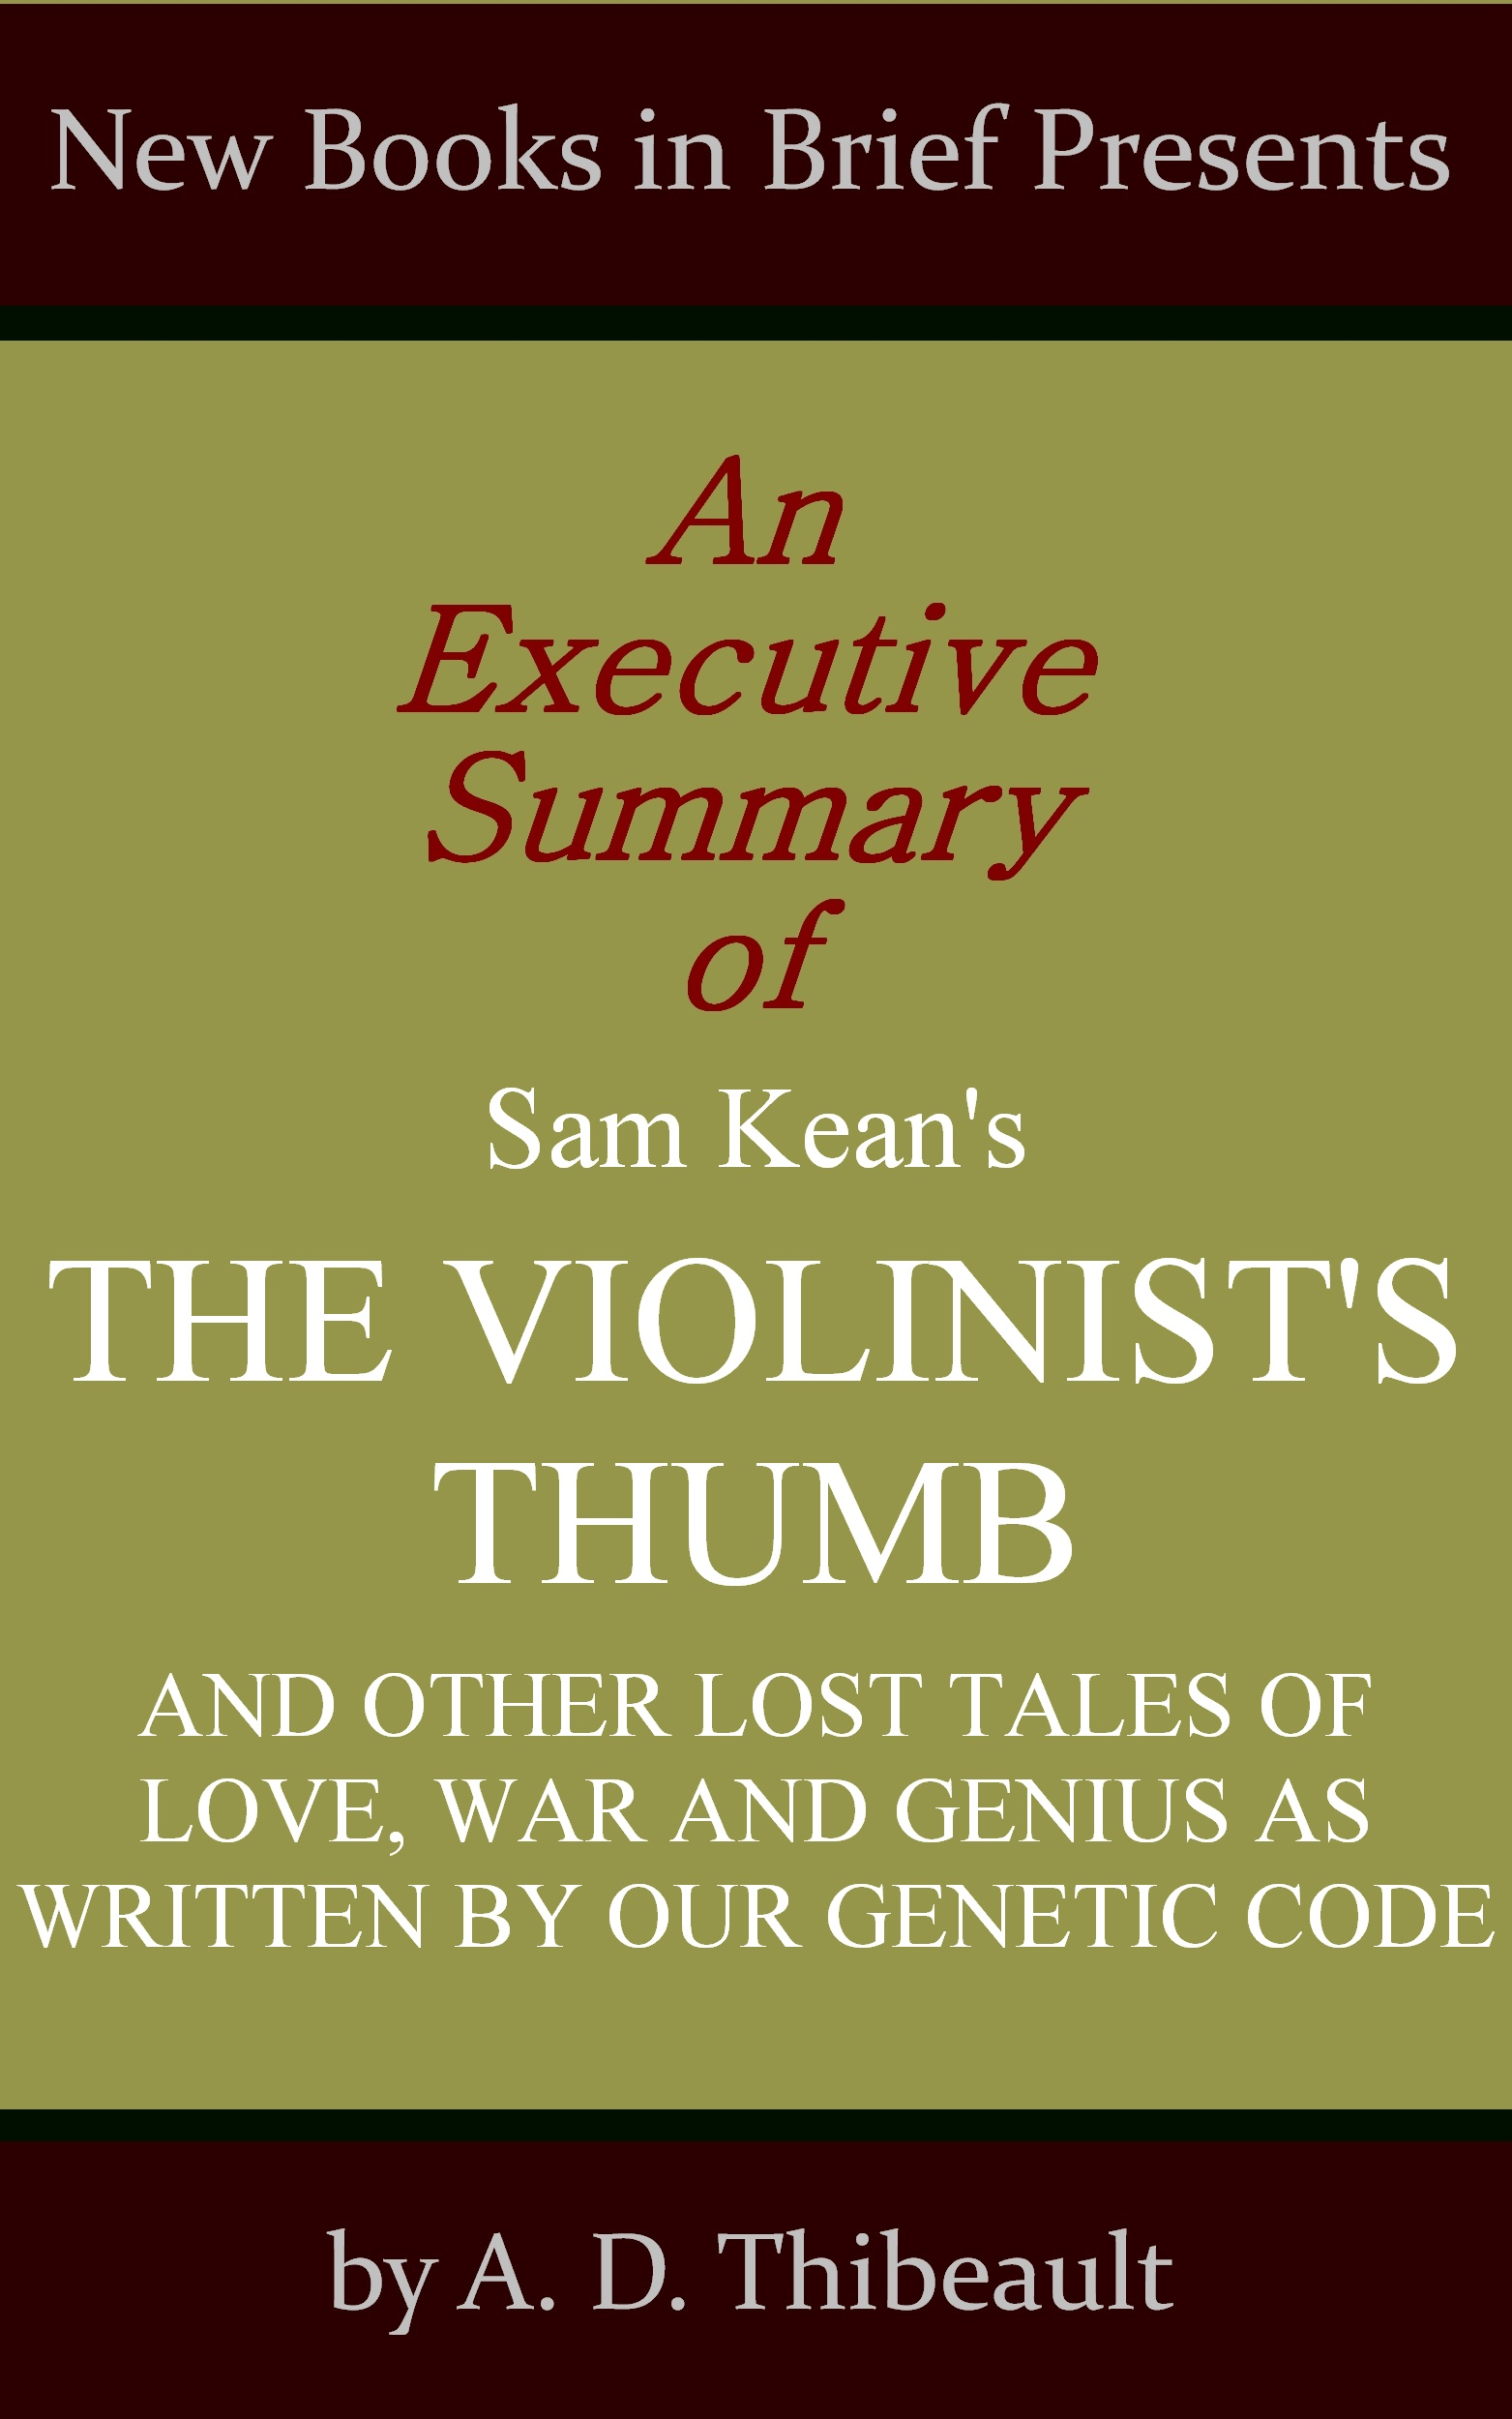 A. D. Thibeault - An Executive Summary of Sam Kean's 'The Violinist's Thumb: And Other Lost Tales of Love, War, and Genius as Written by Our Genetic Code'